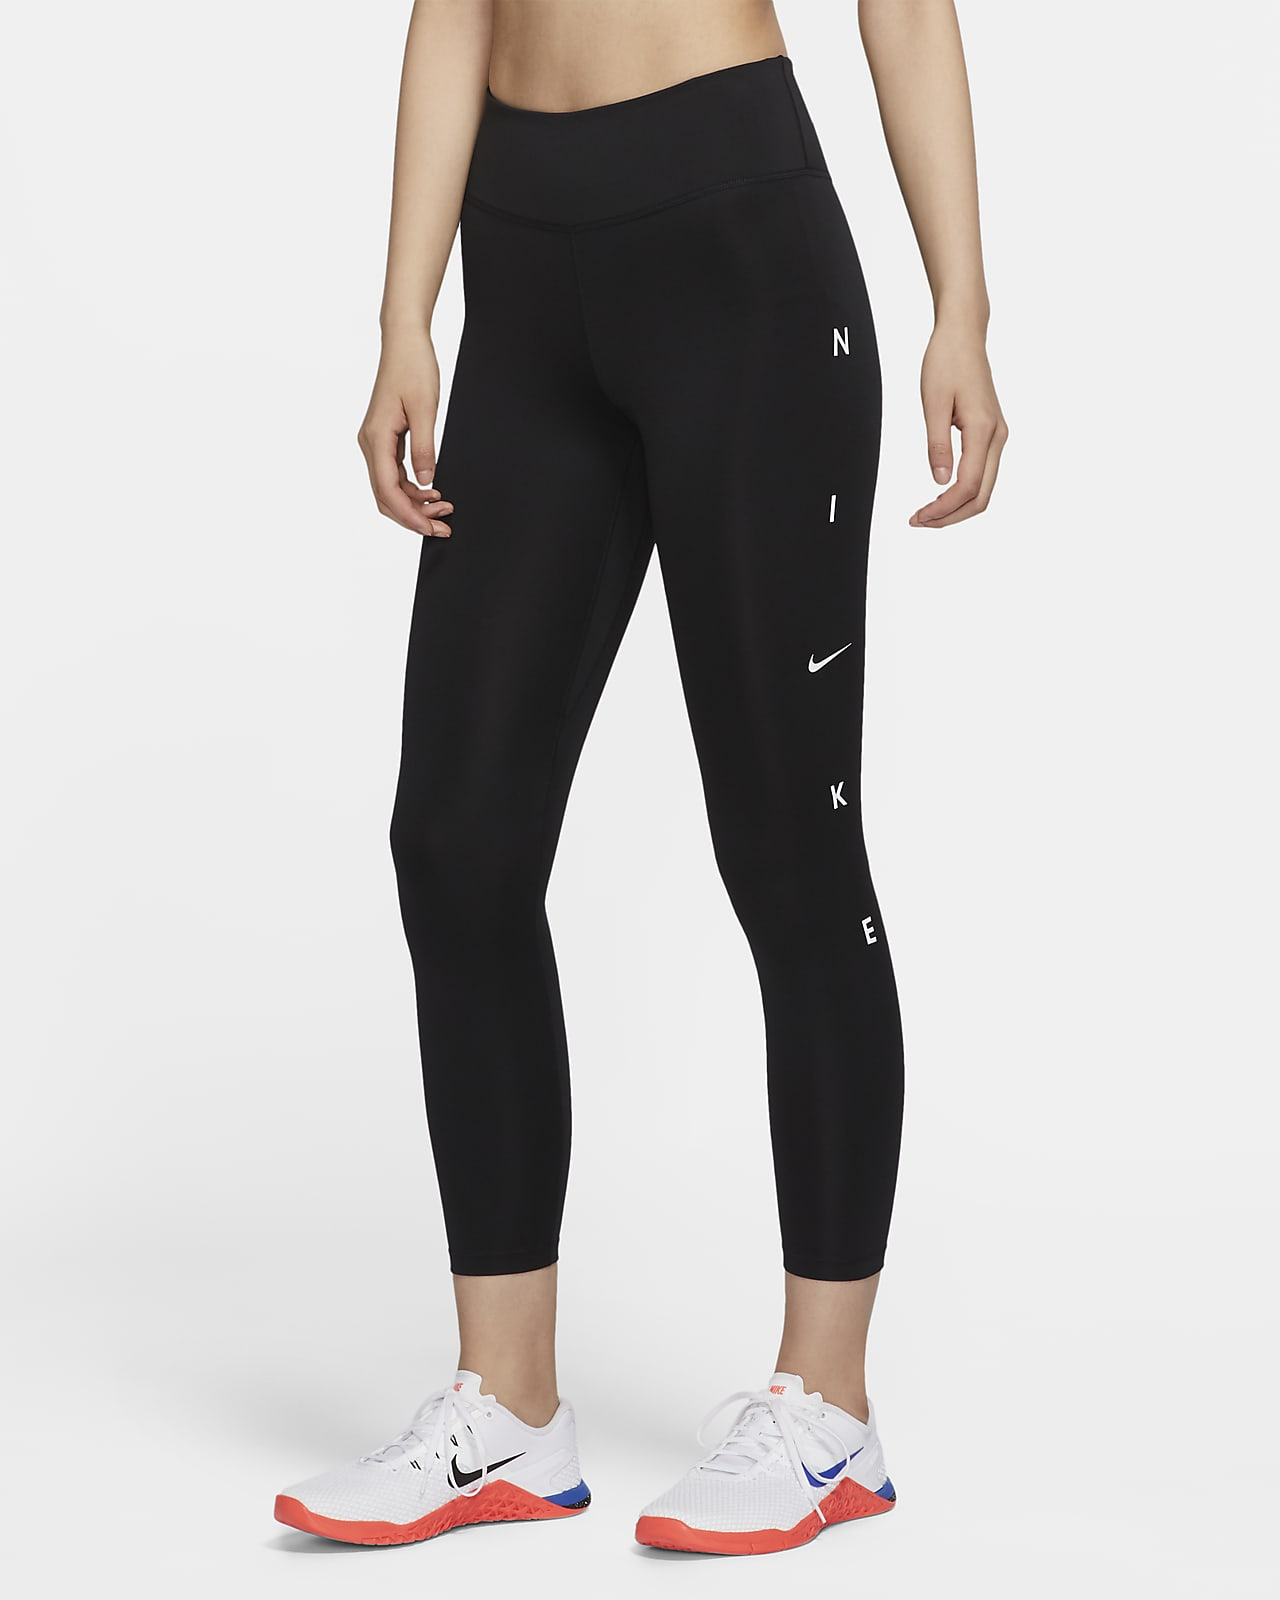 Nike One Women's 7/8 Graphic Tights